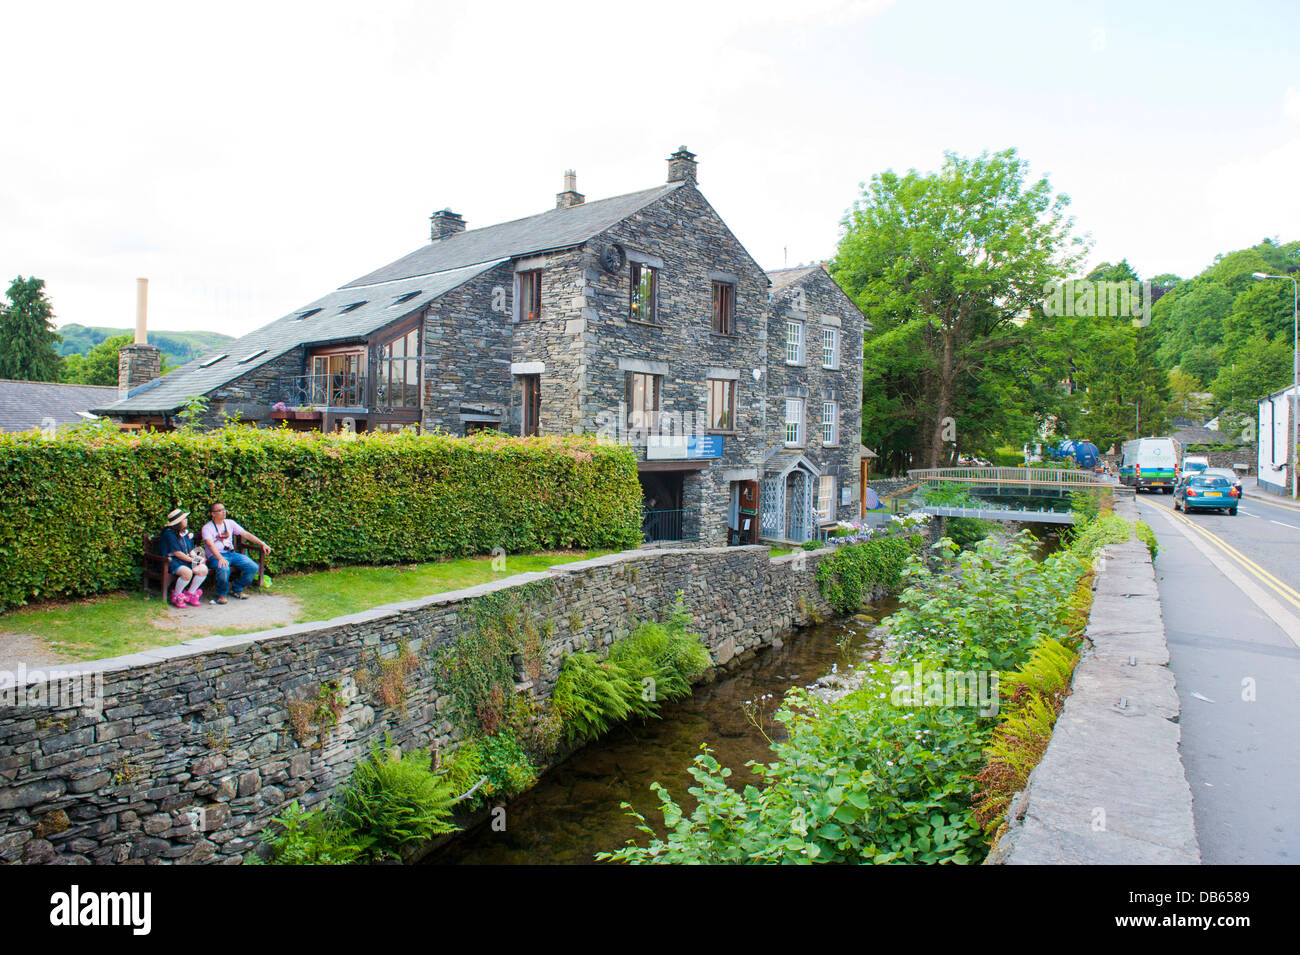 The Cumbrian town of Ambleside, a tourist attraction in the Lake District. The Glasshouse restaurant beside the - Stock Image